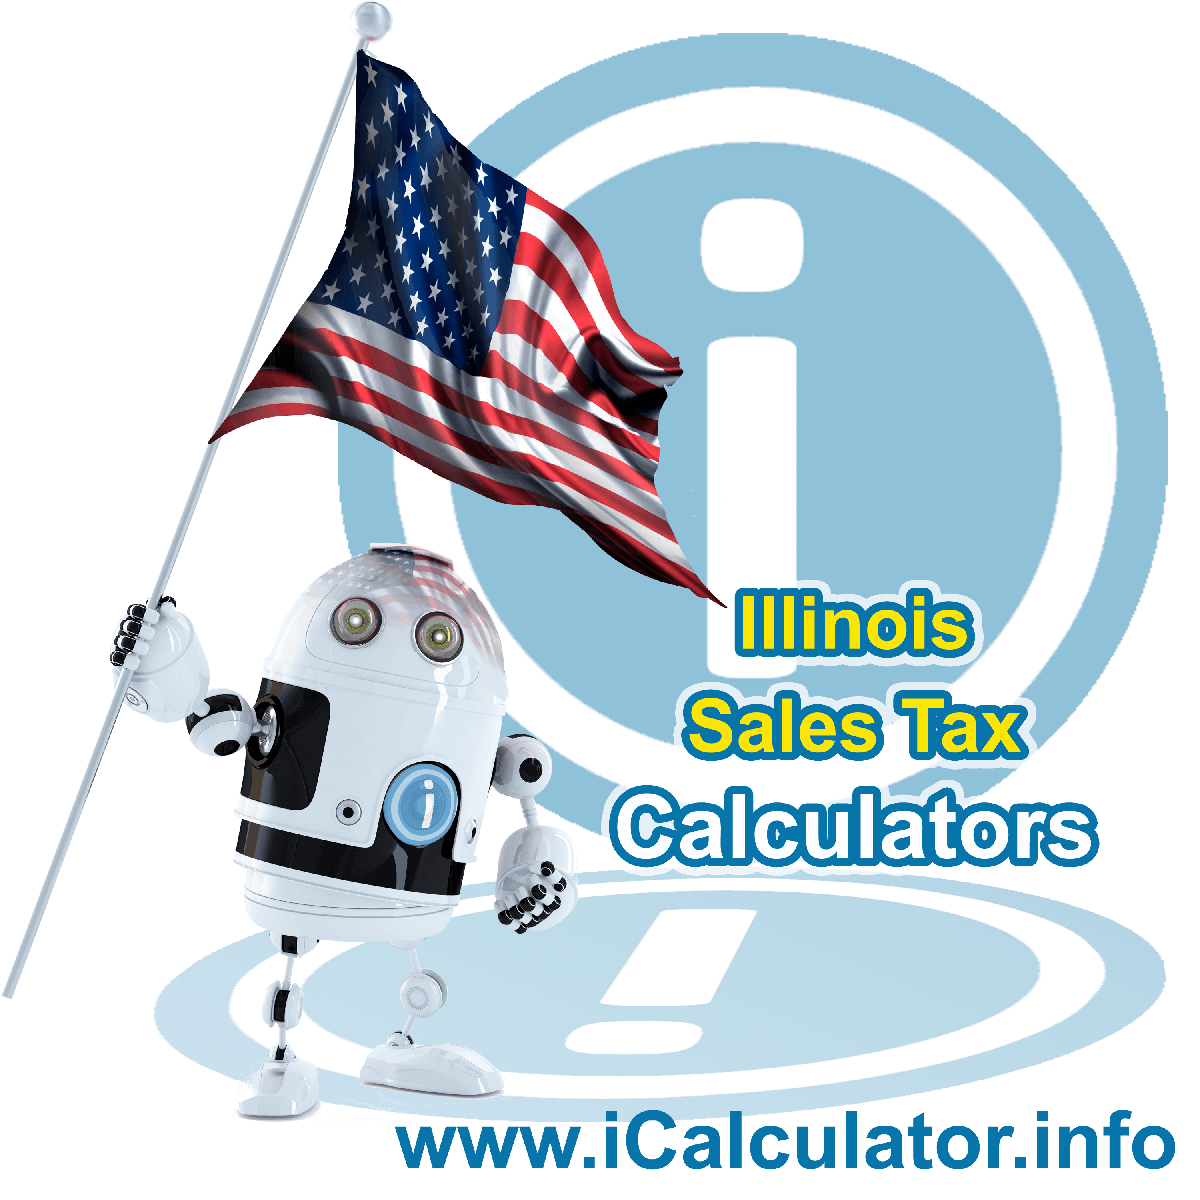 Hickory Hills Sales Rates: This image illustrates a calculator robot calculating Hickory Hills sales tax manually using the Hickory Hills Sales Tax Formula. You can use this information to calculate Hickory Hills Sales Tax manually or use the Hickory Hills Sales Tax Calculator to calculate sales tax online.